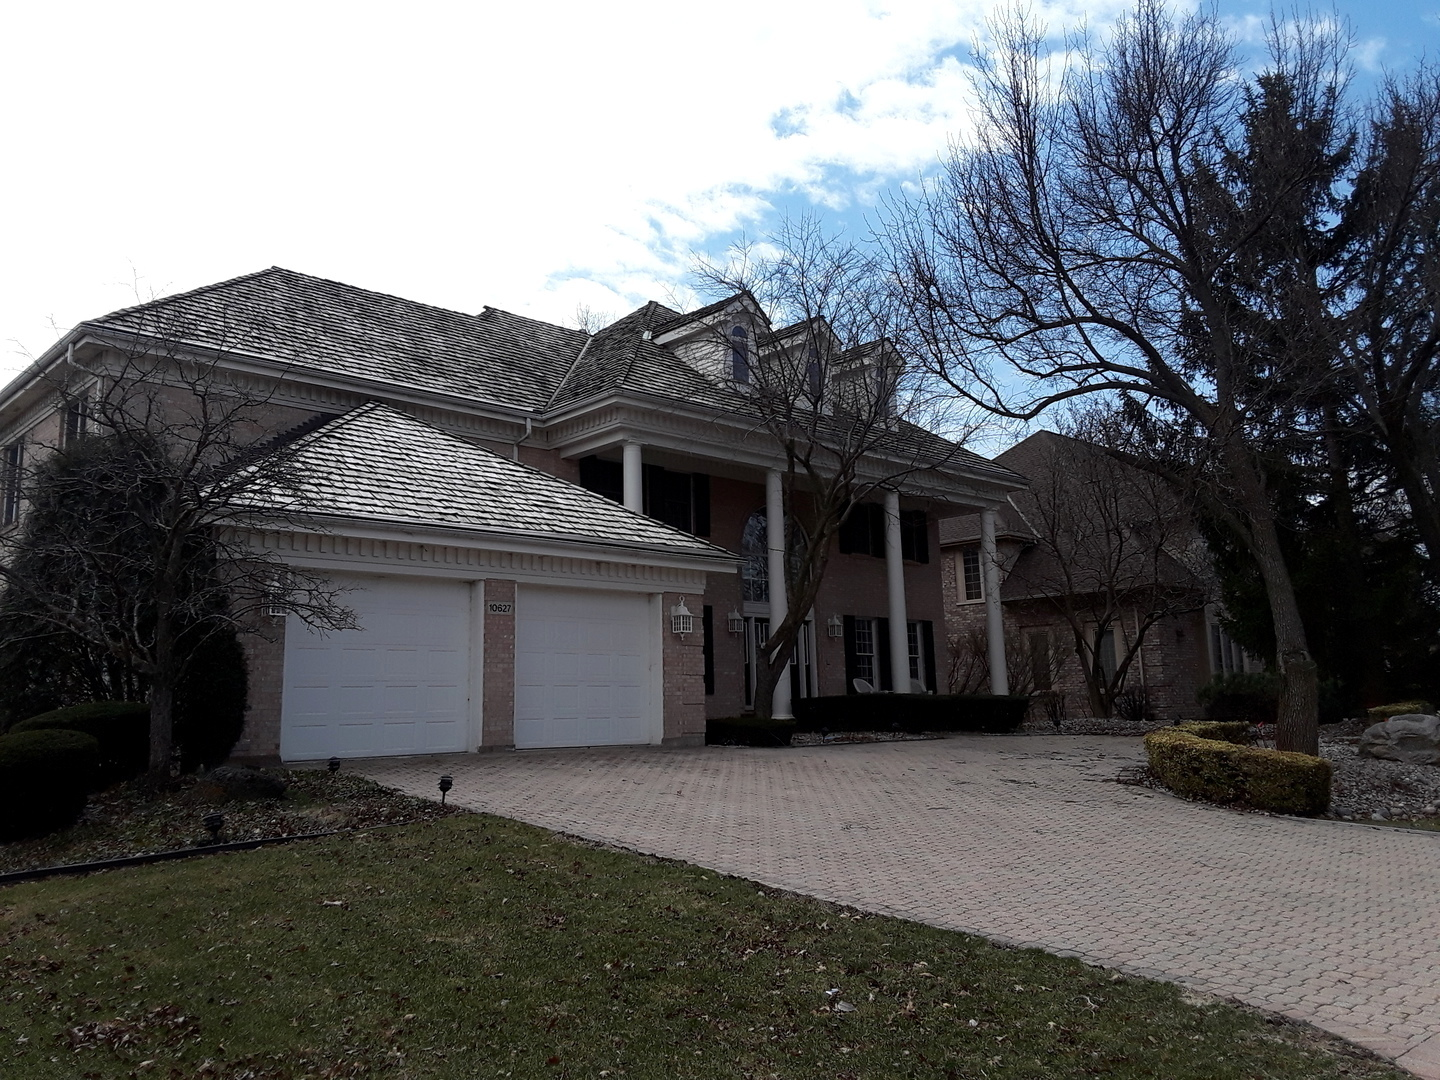 Property for sale at 10627 Misty Hill Road, Orland Park,  Il 60462